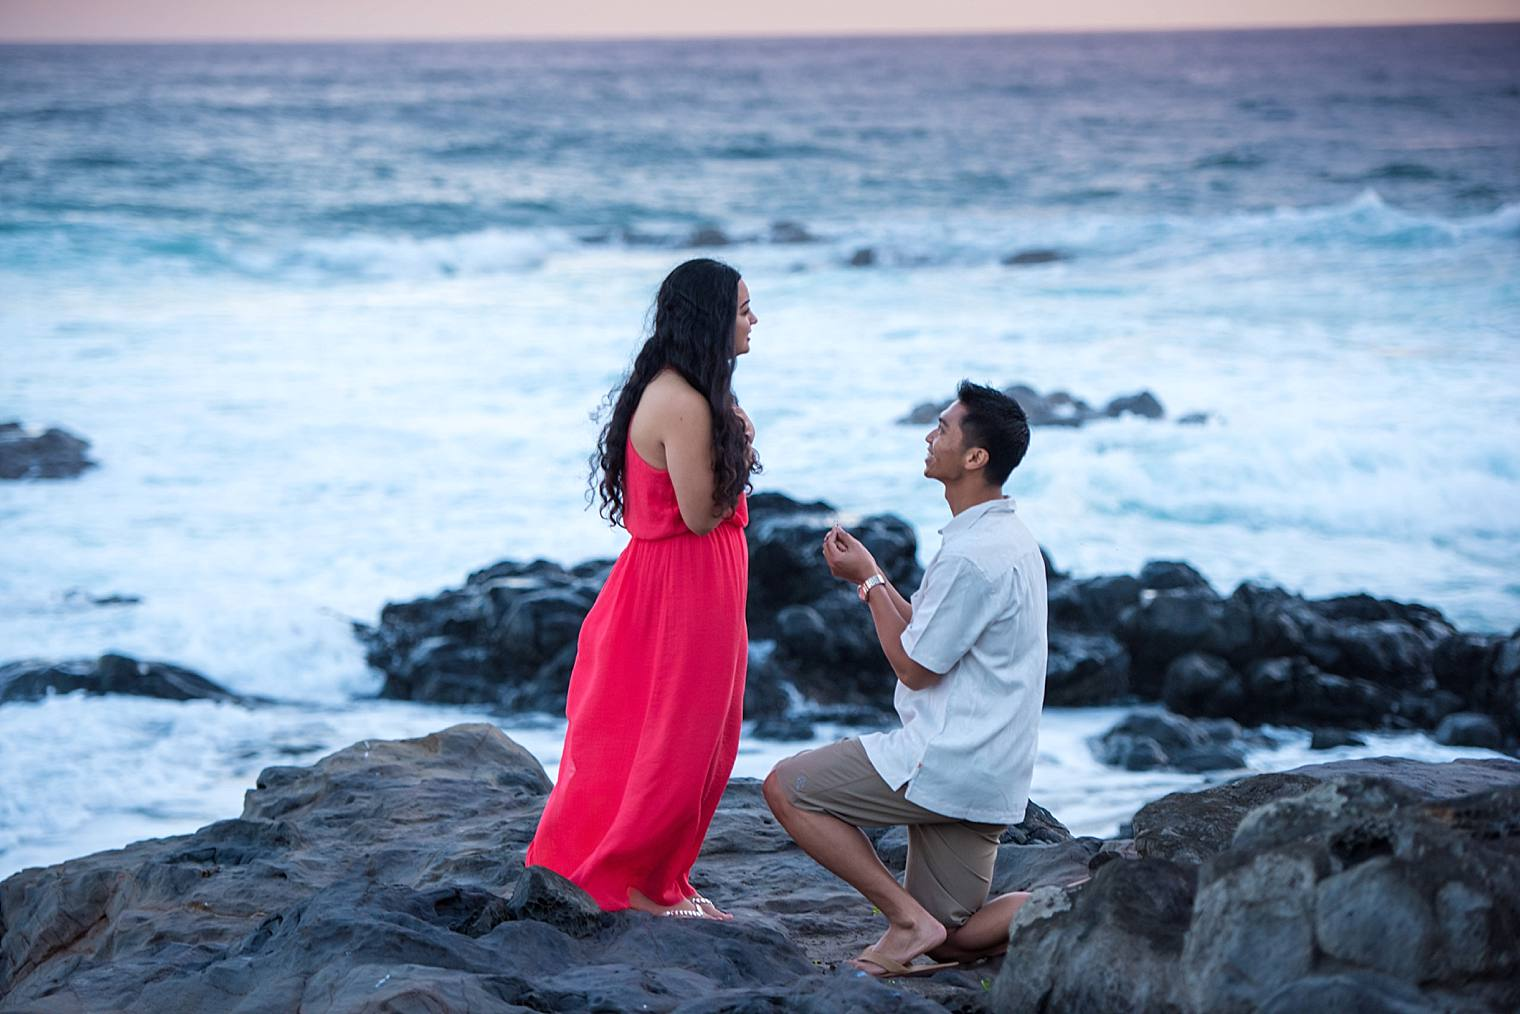 EJ + Susan | Sunrise Cliff Proposal on Maui's North Shore